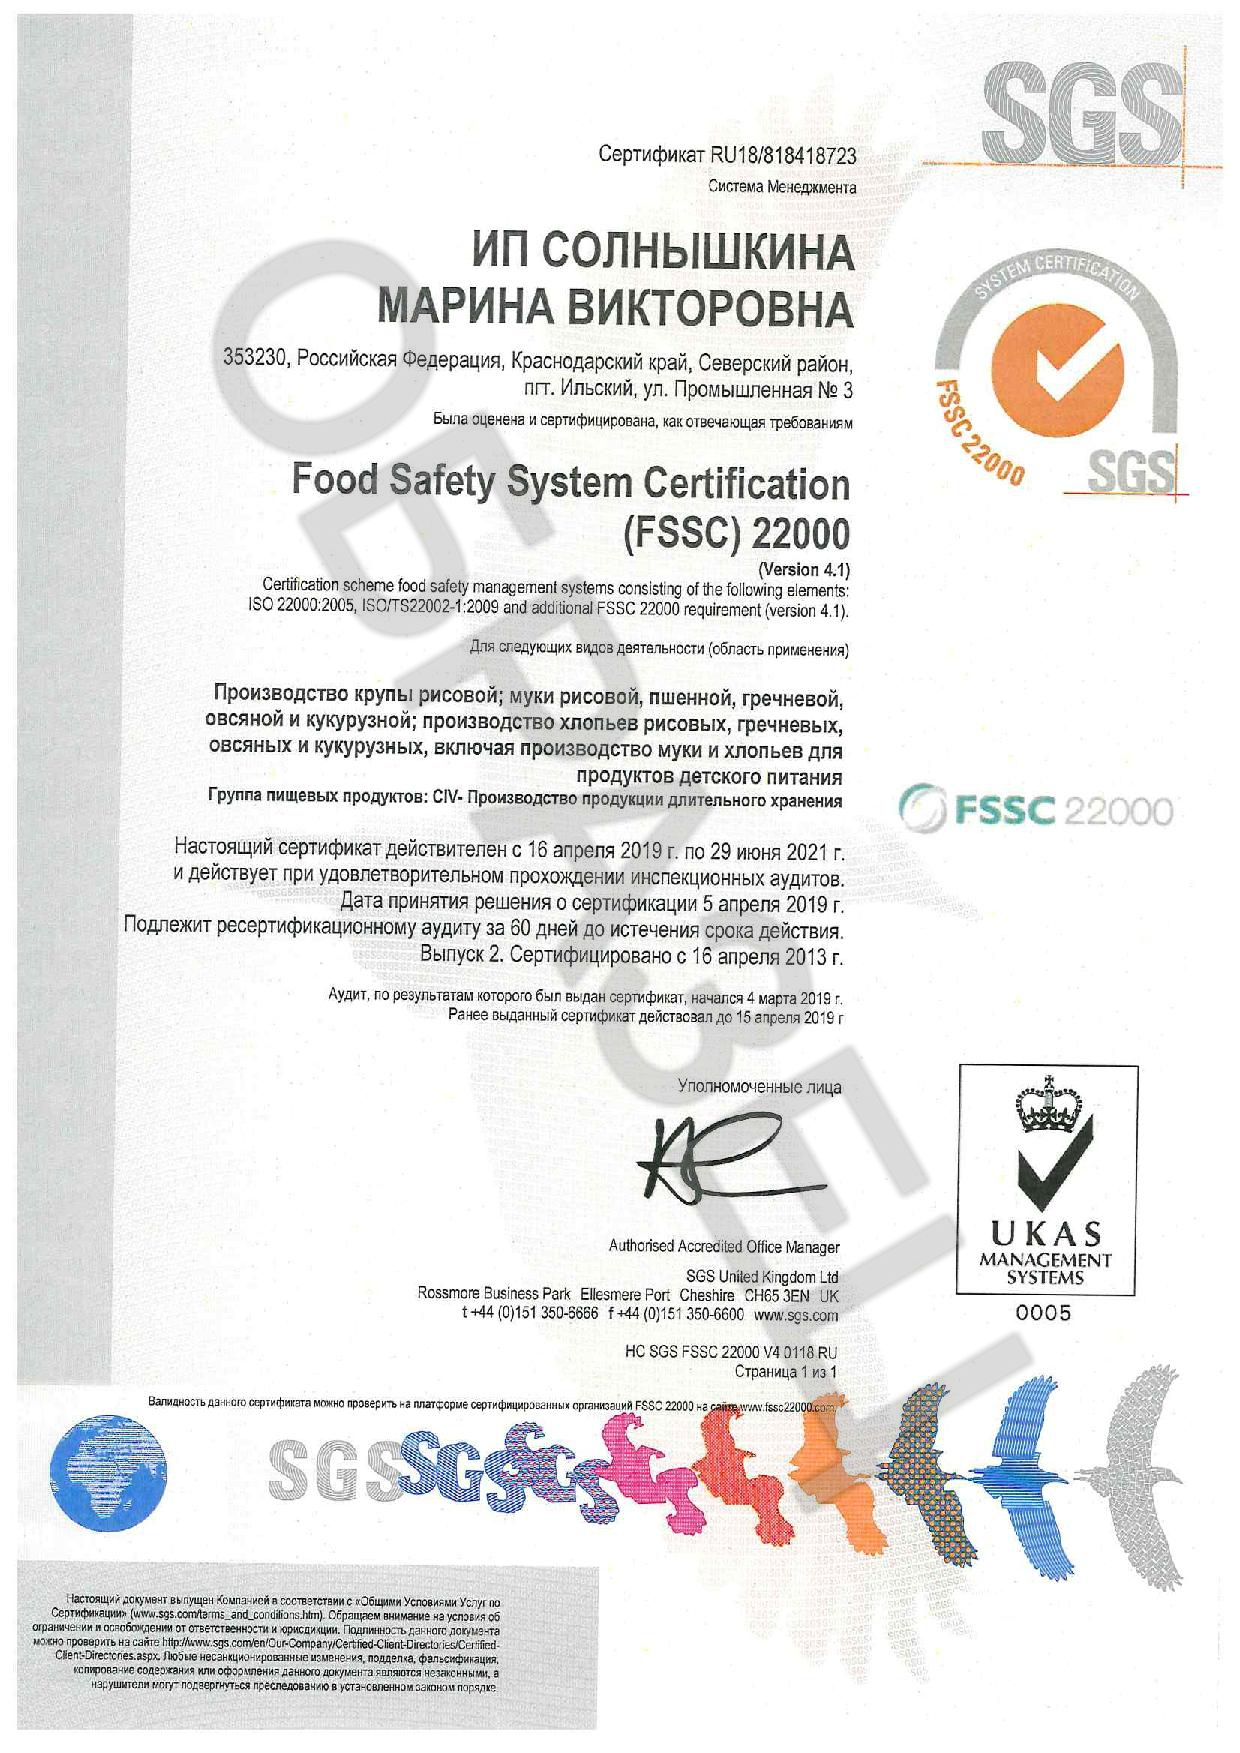 FOOD SAFETY SYSTEM CERTIFICATION (FSSC)